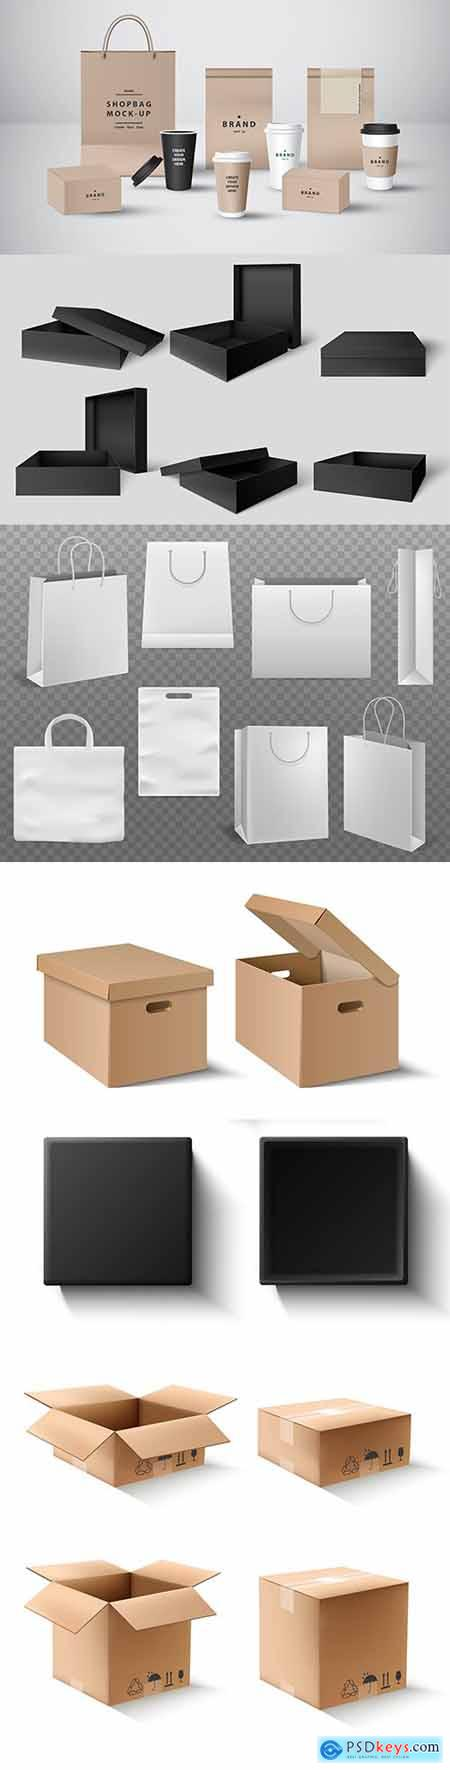 Cardboard box and packages for purchase of goods and products